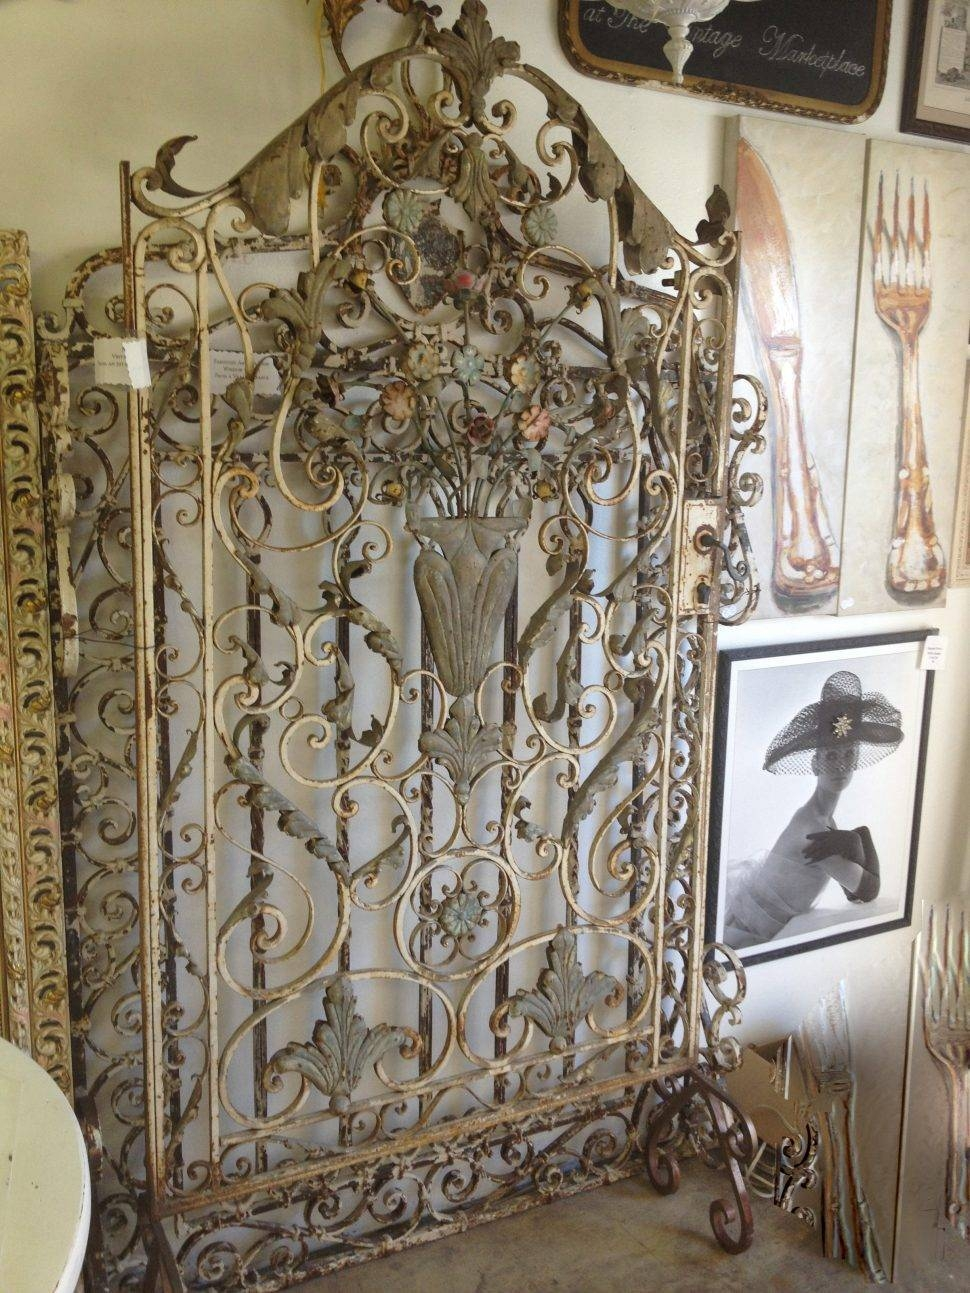 Bedroom : Metal Wall Decor Cheap Metal Artwork For Wall Outdoor For Most Recently Released Italian Metal Wall Art (View 12 of 25)